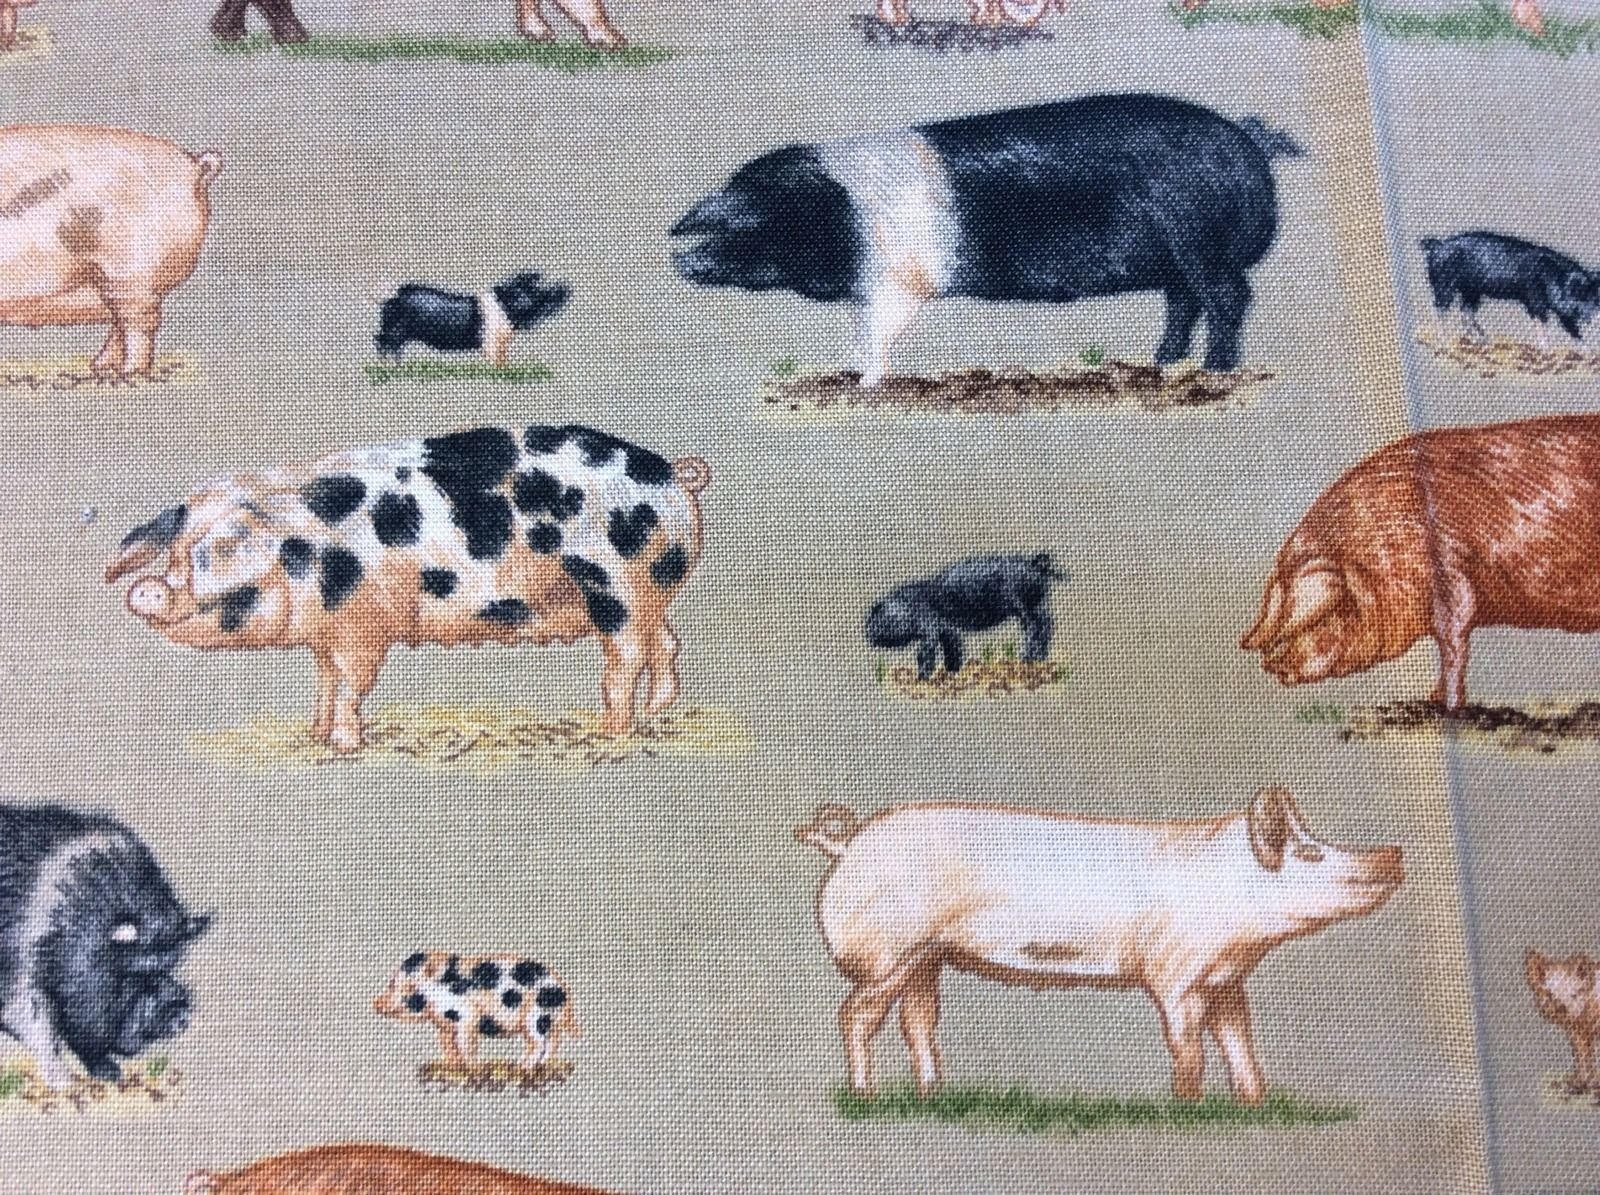 Cute Pig Farm Piggies Farming Country Style Bacon Cotton Quilting Fabric FT33